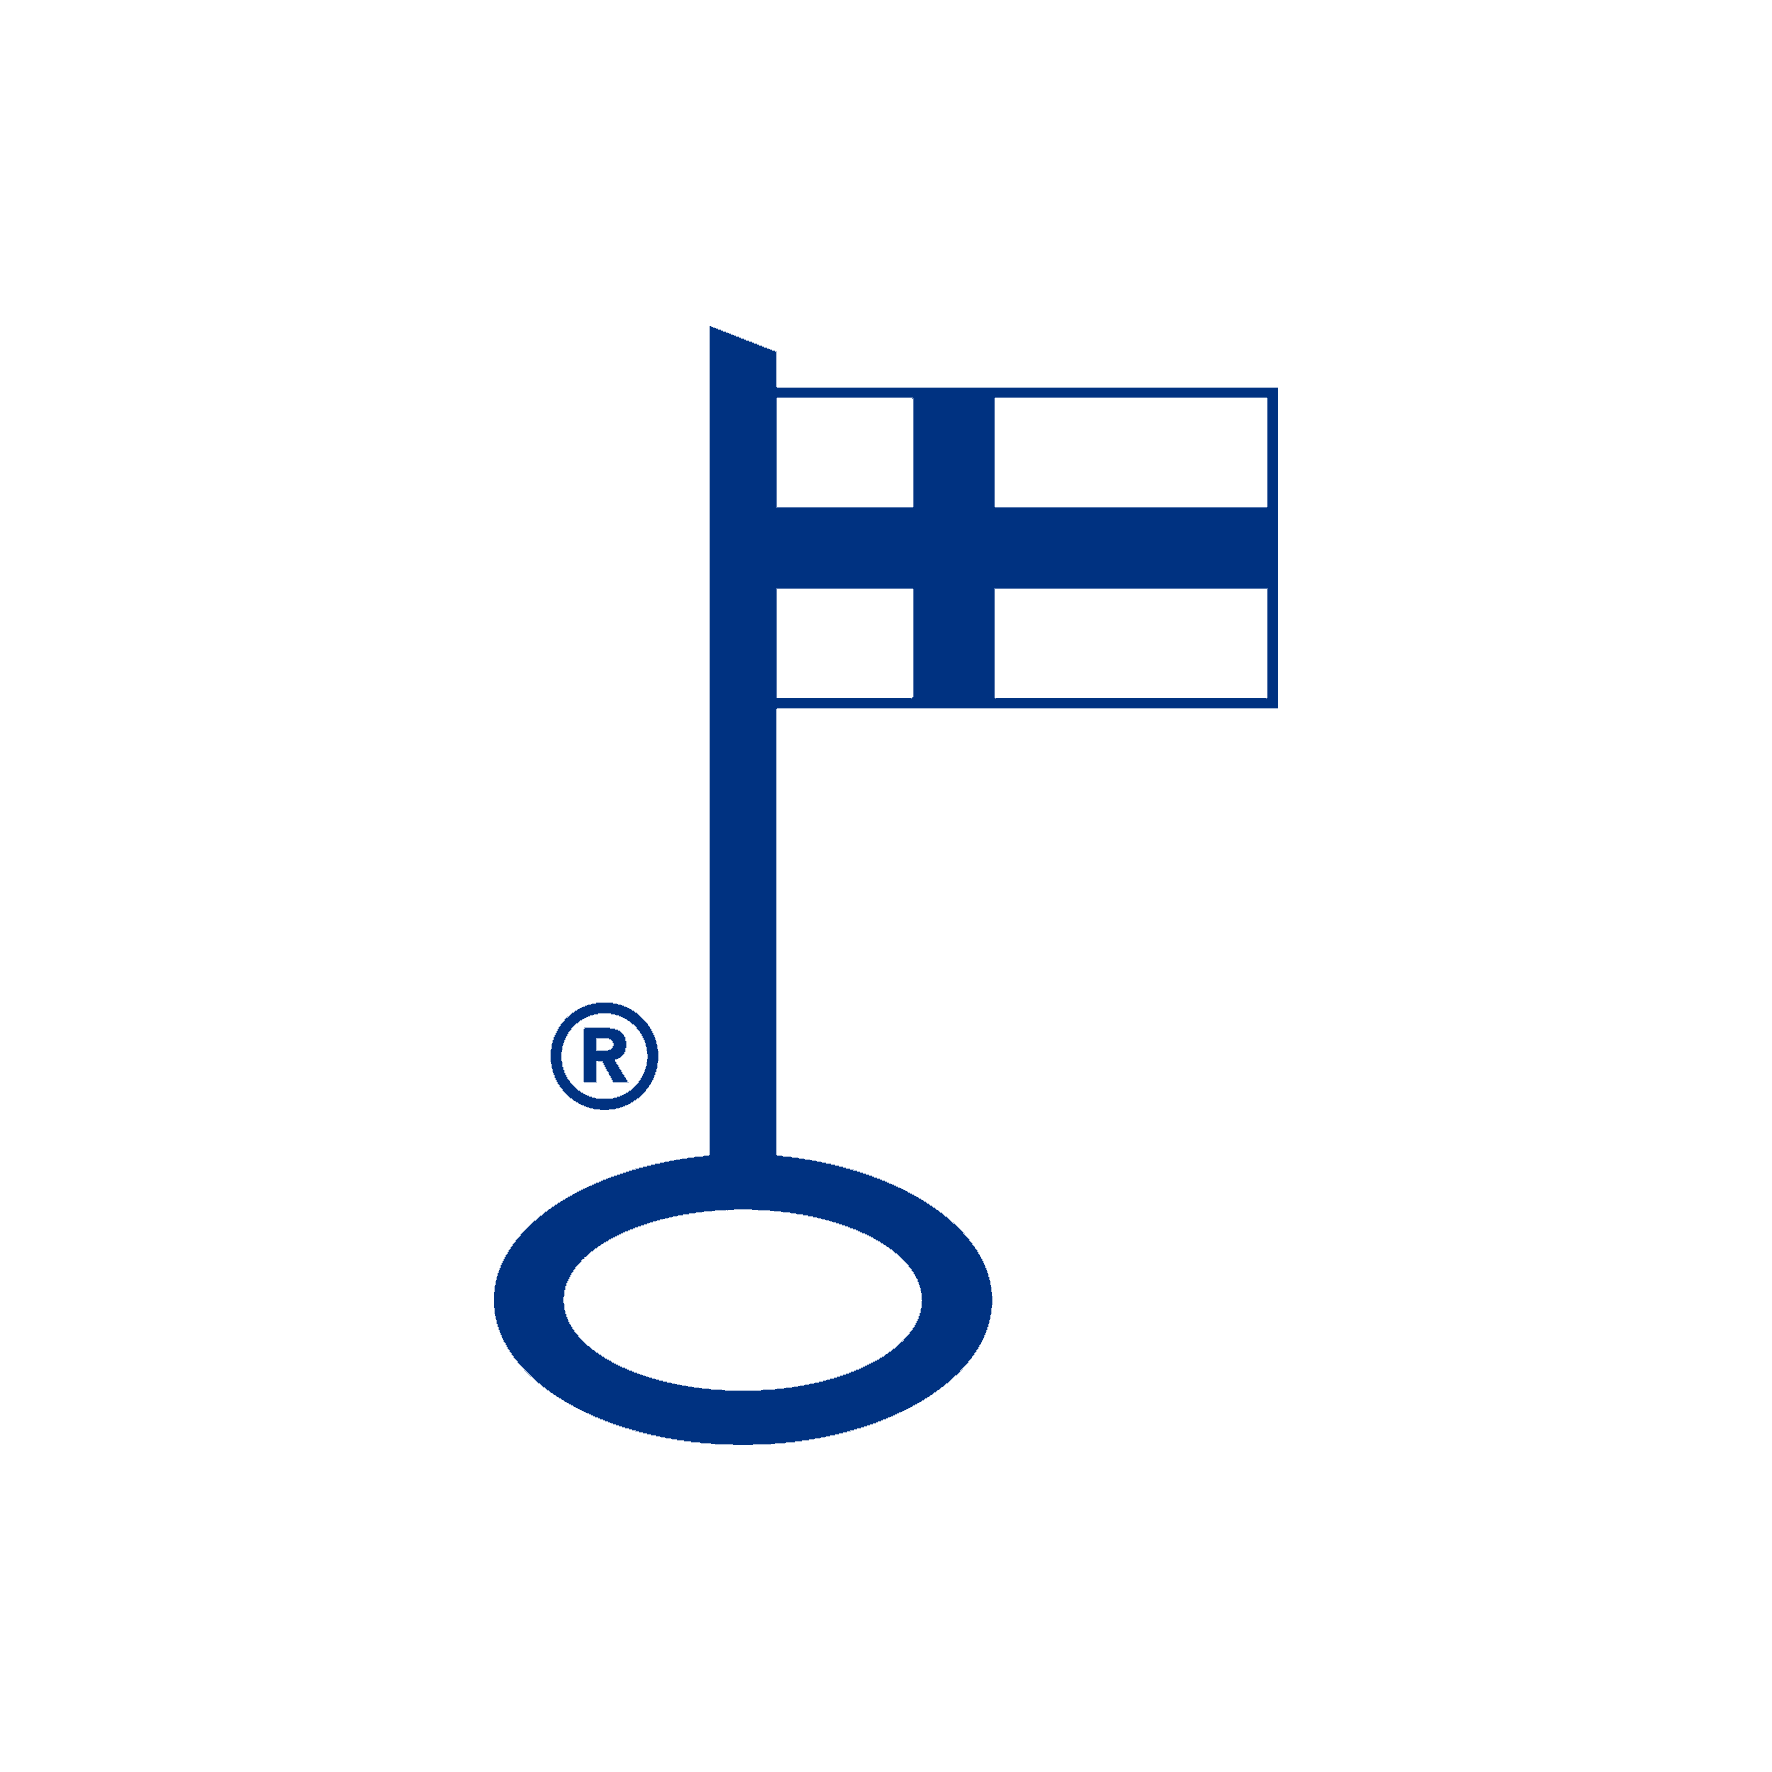 Private Case products have been granted the Key Flag symbol as an indicatuon of Finnish work.